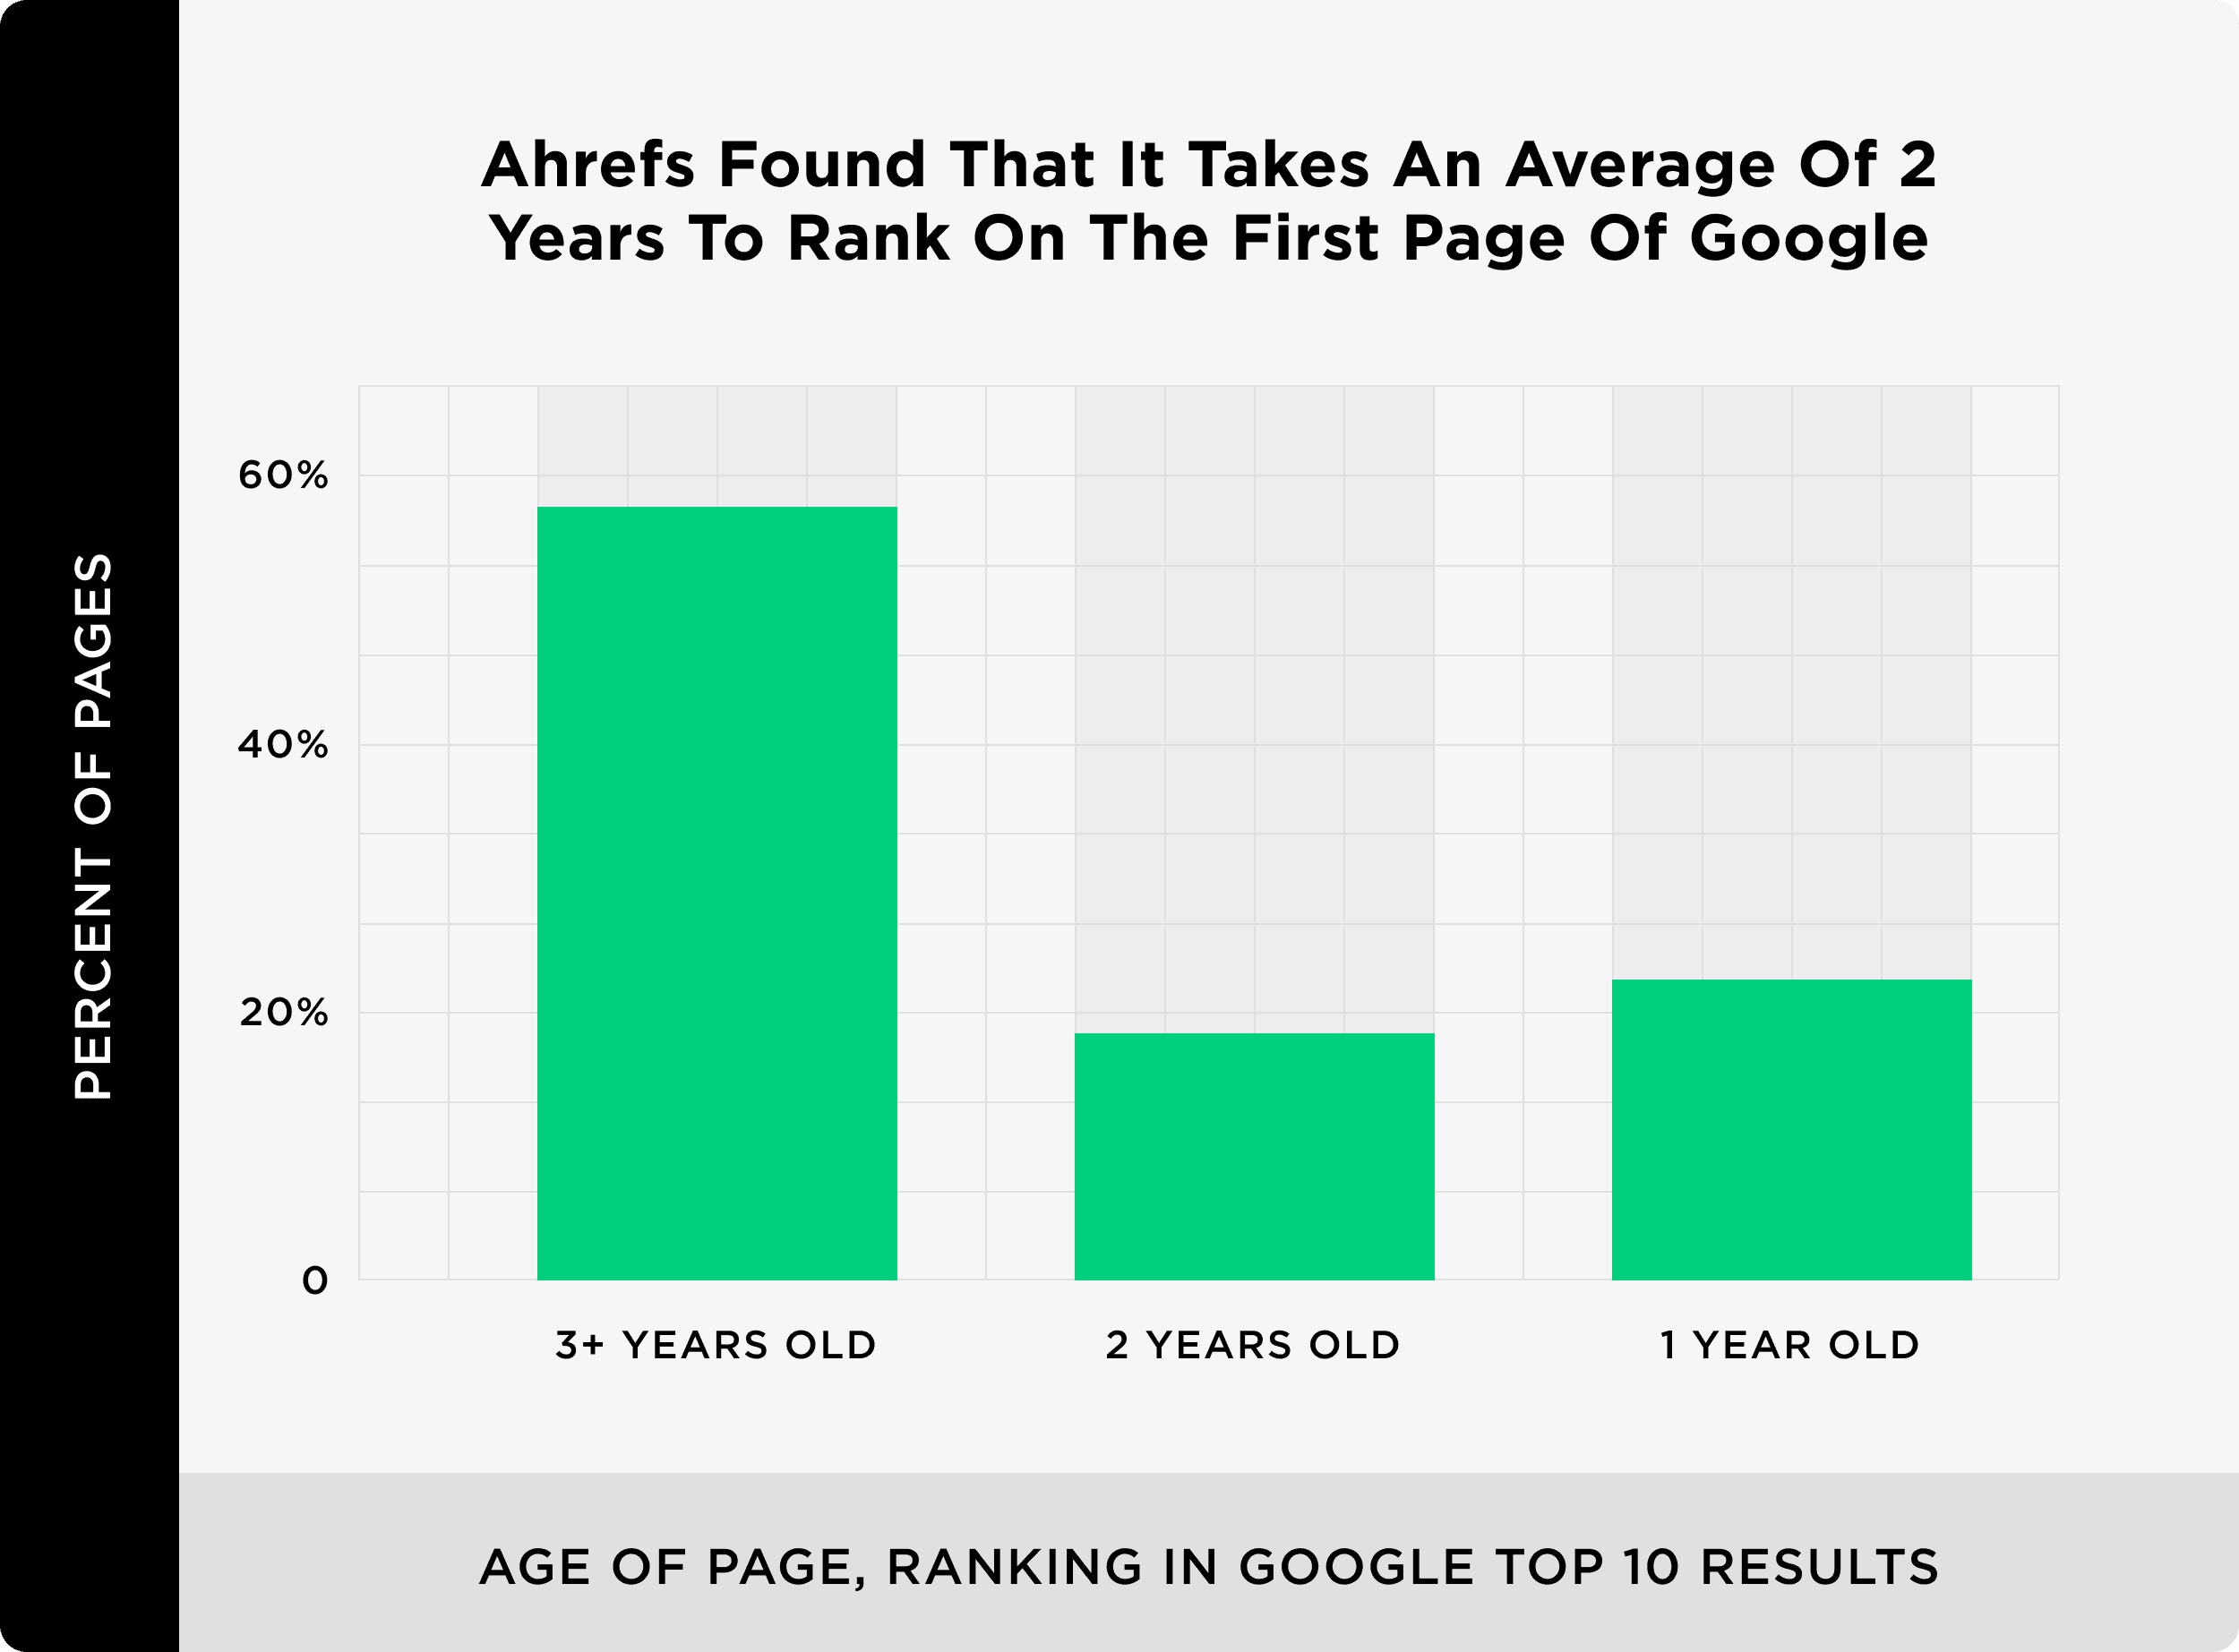 Ahrefs Found That It Takes An Average Of 2 Years To Rank On The First Page Of Google